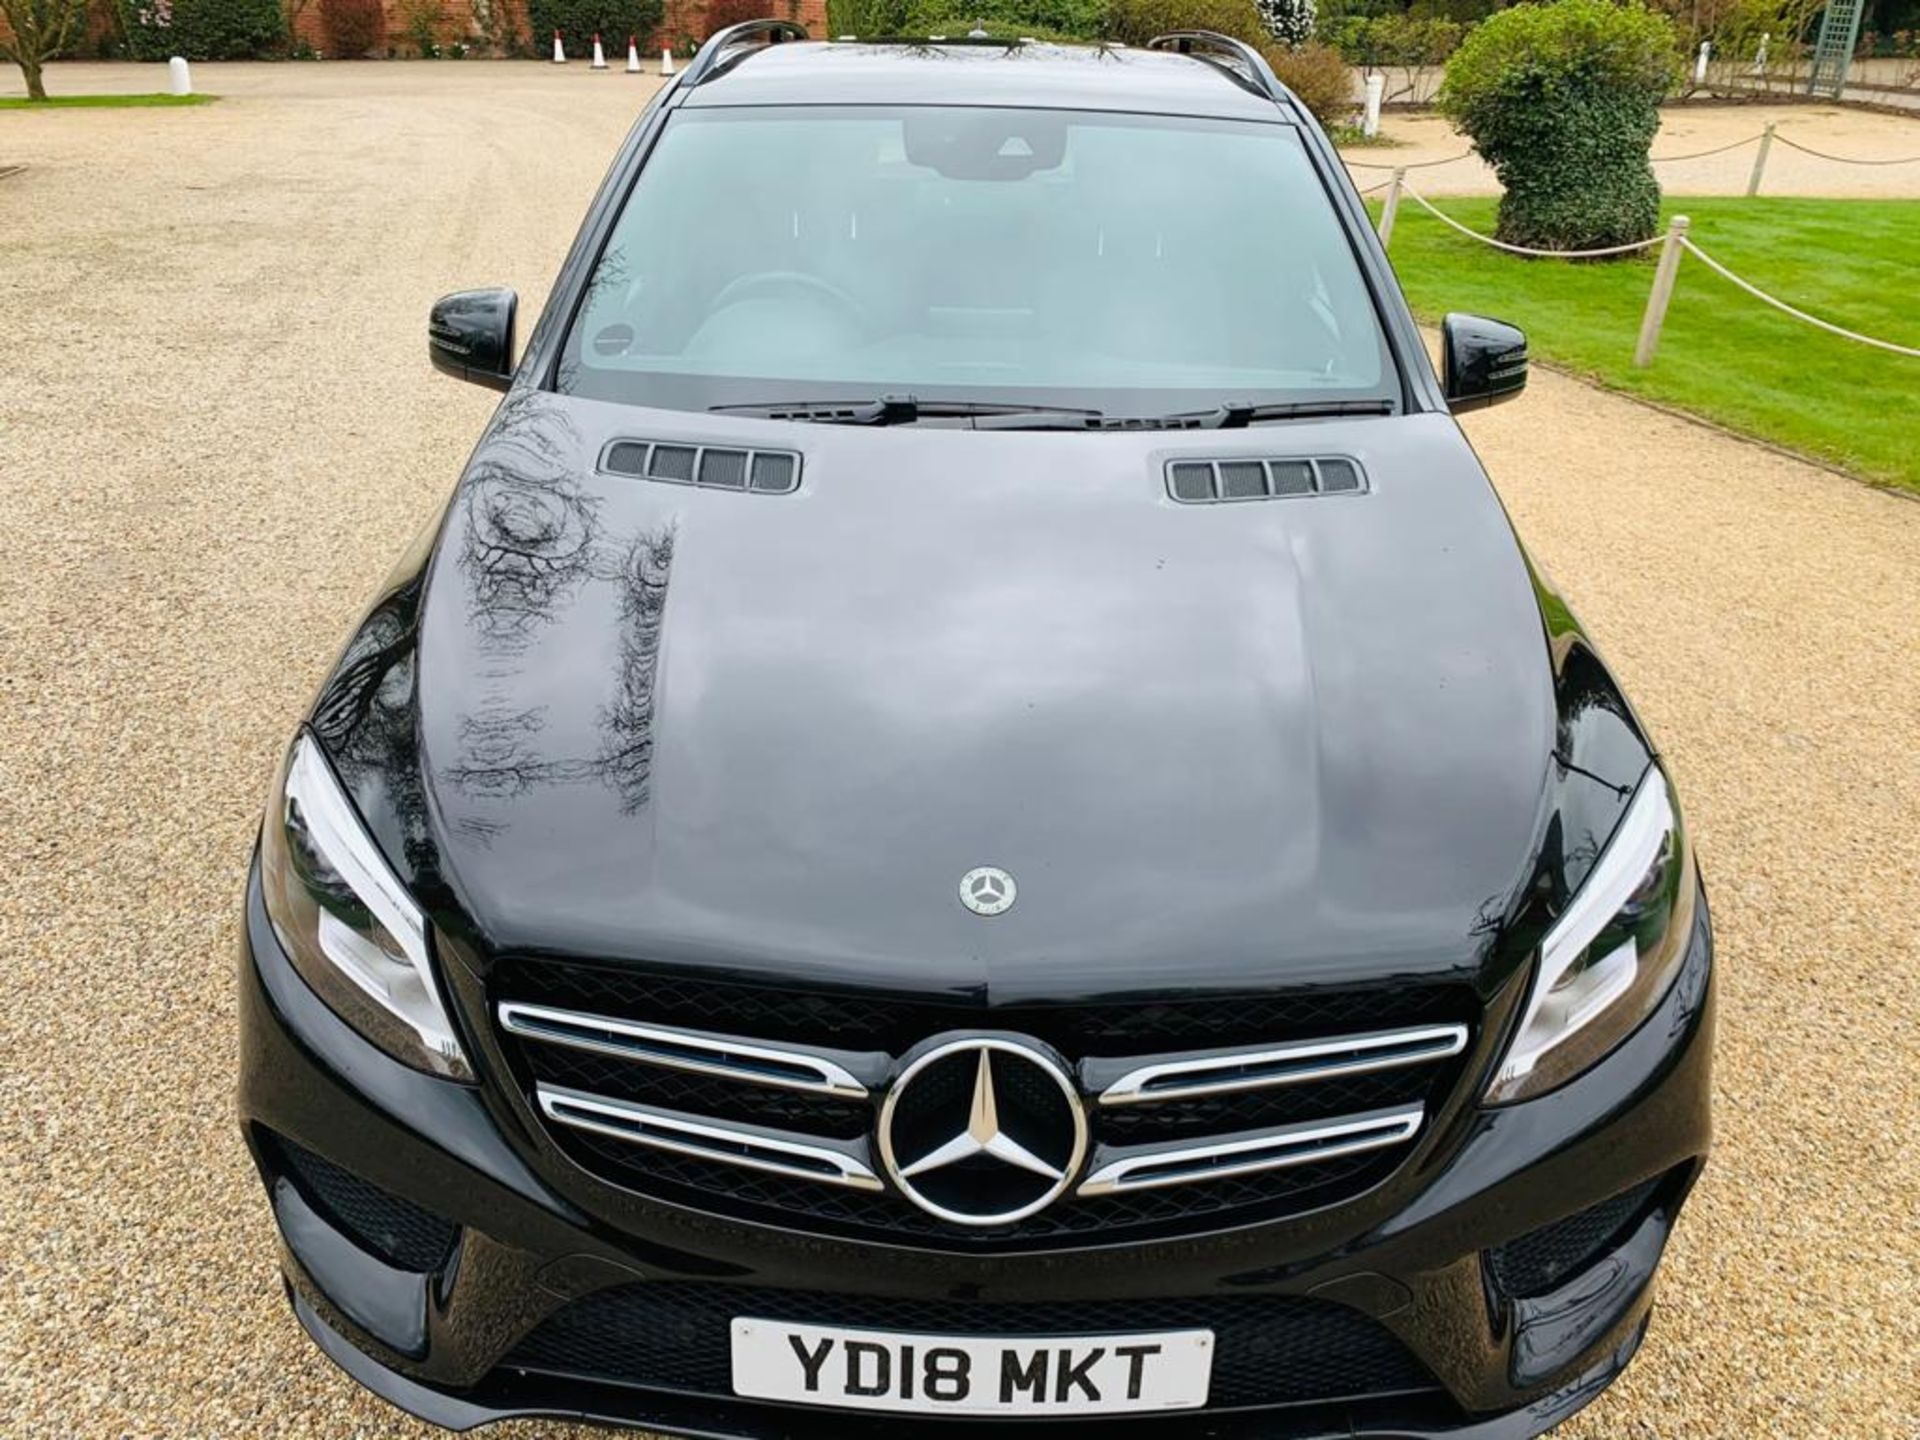 (RESERVE MET) Mercedes GLE 250d 4Matic AMG Night Edition 9G Tronic - 2018 18 Reg - Only 33K Miles - - Image 10 of 36